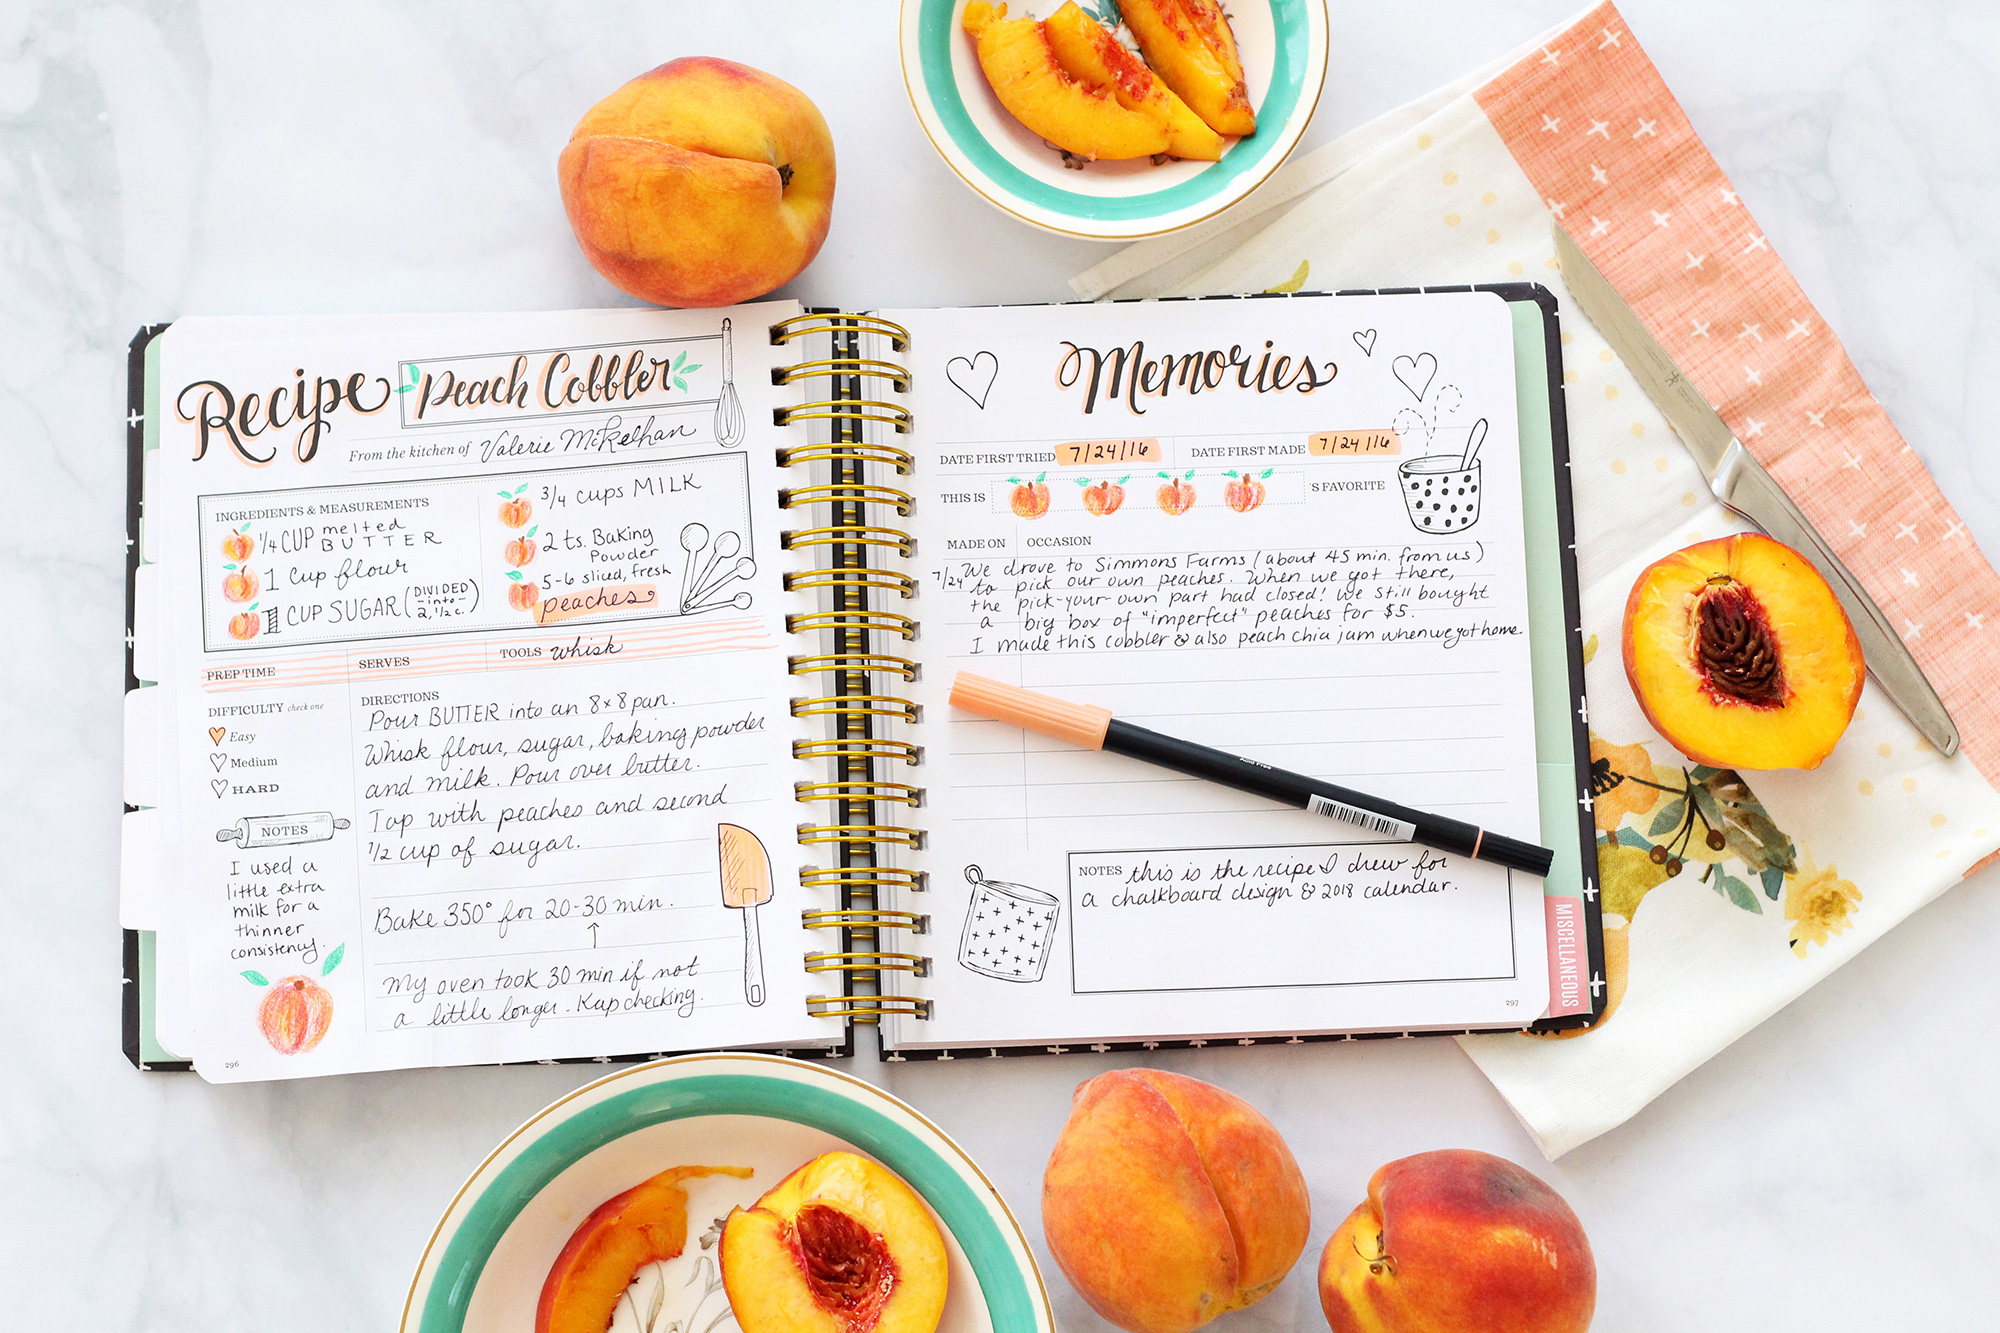 Get crafty with your Keepsake Kitchen Diary by adding personal touches to the recipe! Brush pens and colored pencils are great ways to make your recipe and memory spreads more personal.